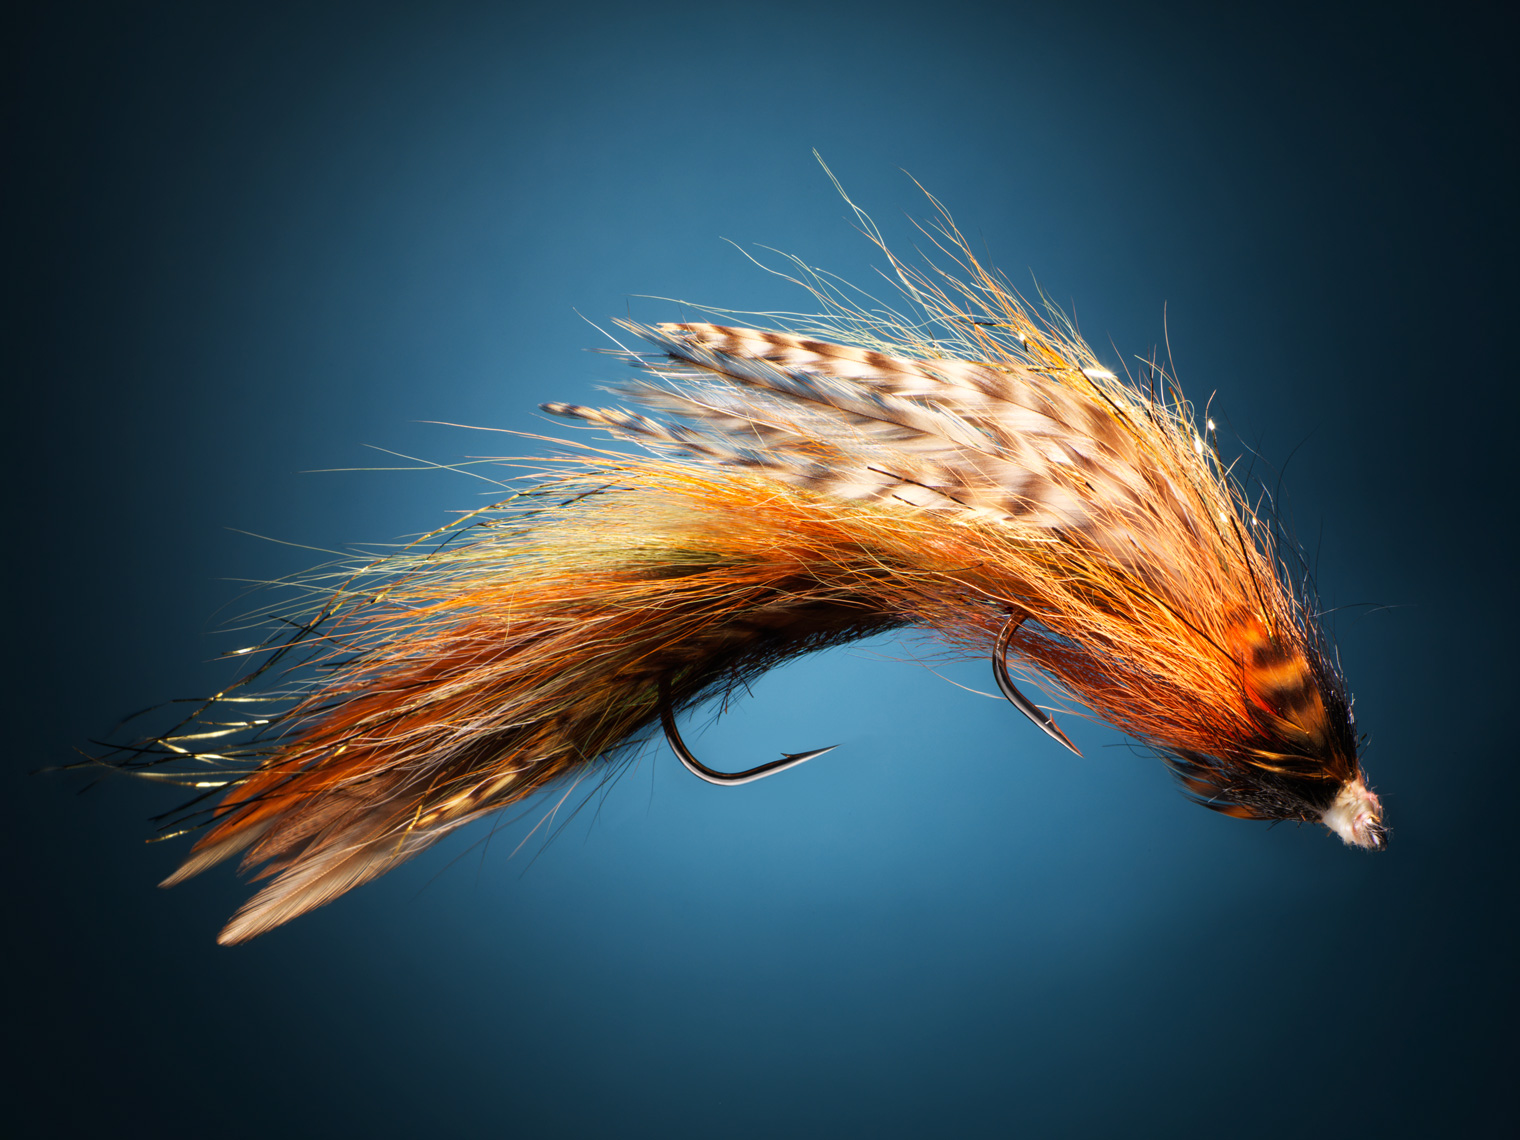 fly fishing jig on a blue background